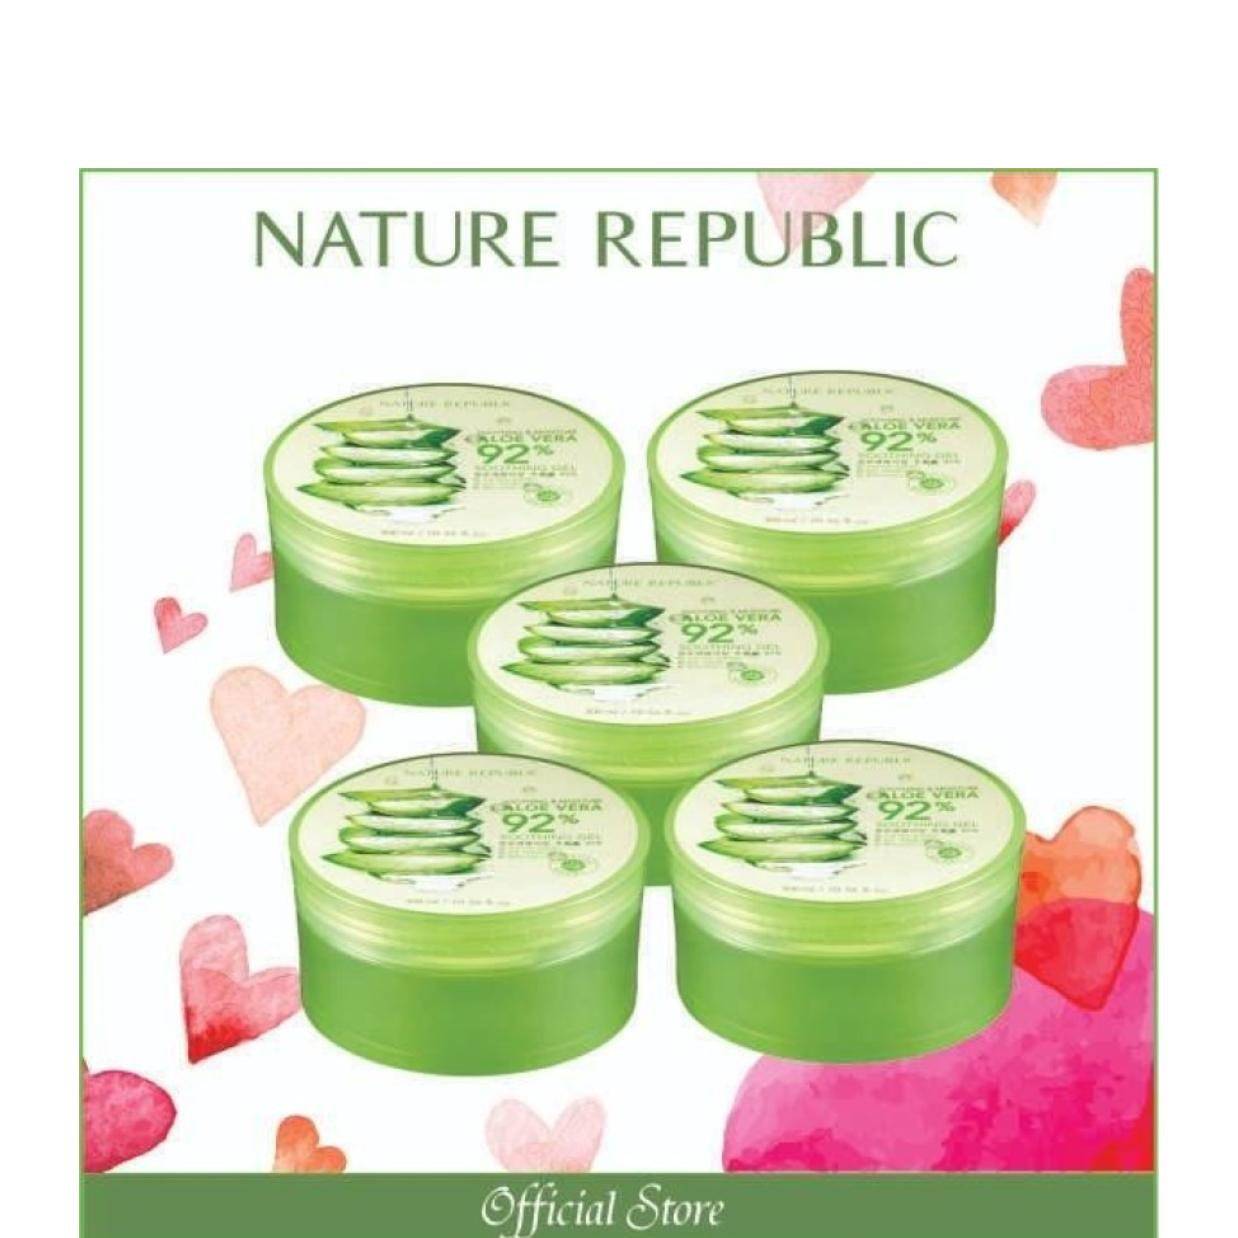 Best Buy Natureoyax Soothing Moisturizing Aloe Vera 98 300ml Prices Nature Republic Jar Gel 300 Ml Authentic And 92